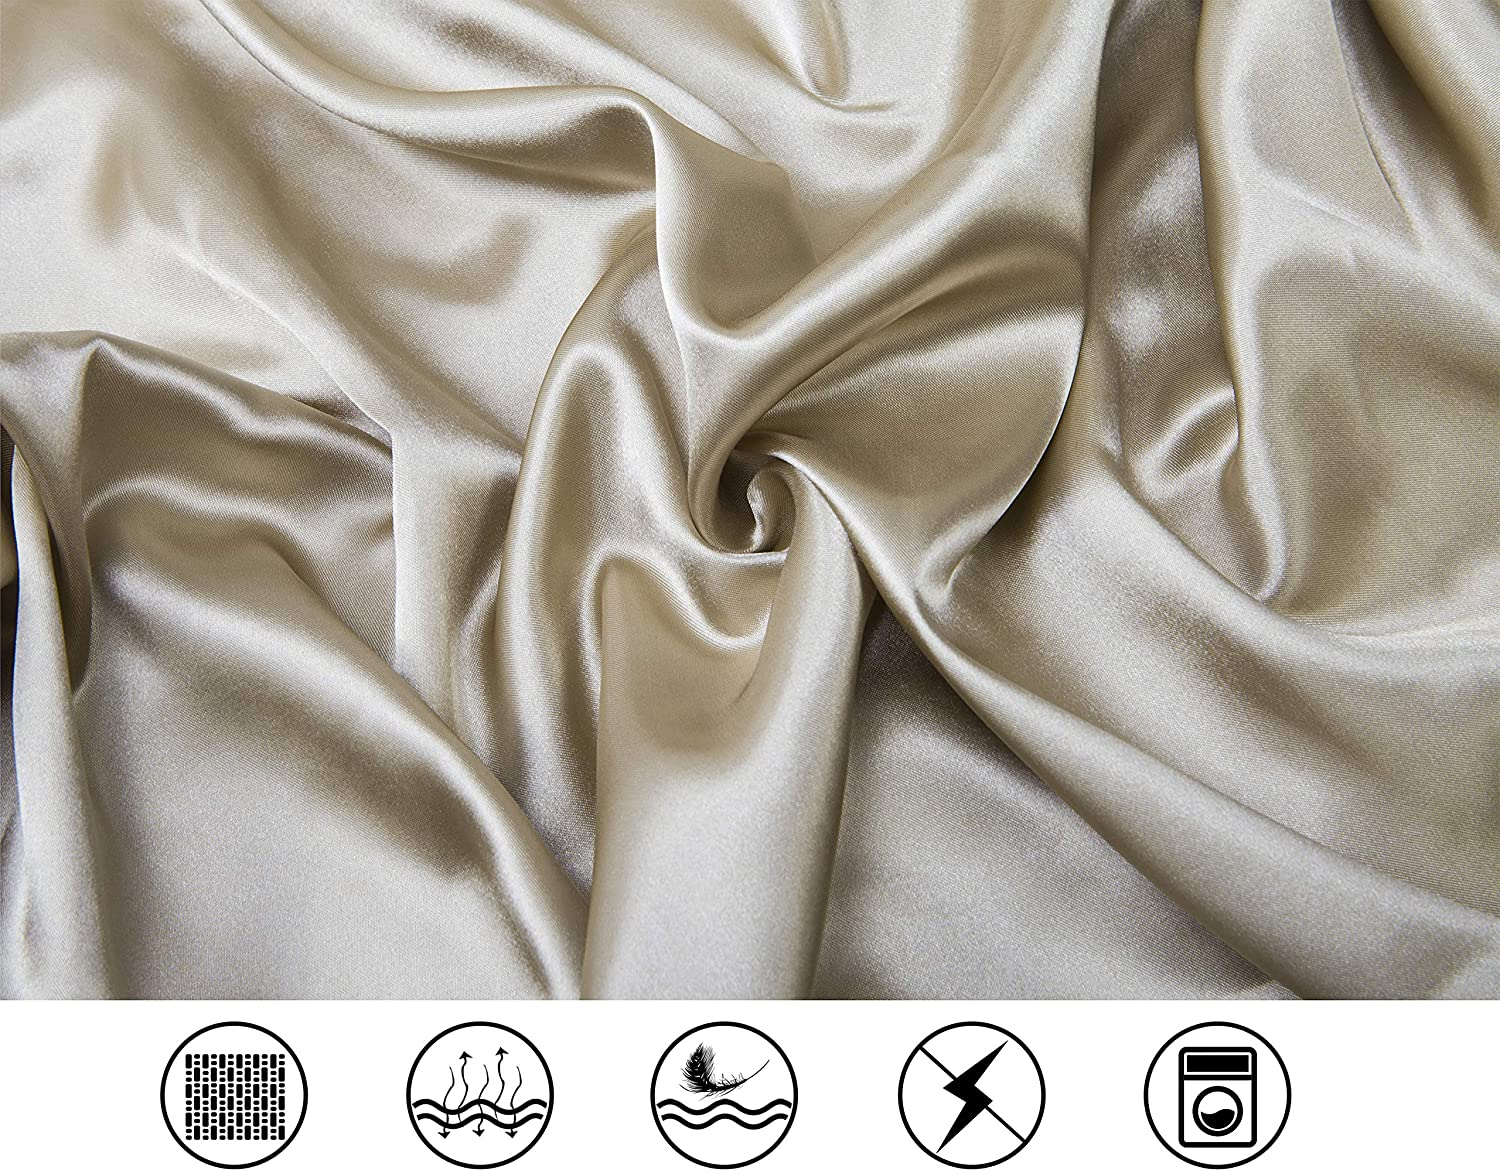 Lanest Housing Silk Satin Sheets, 4-Piece Queen Size Satin Bed Sheet Set with Deep Pockets, Cooling and Soft Hypoallergenic Satin Sheets Queen - Taupe: Home & Kitchen